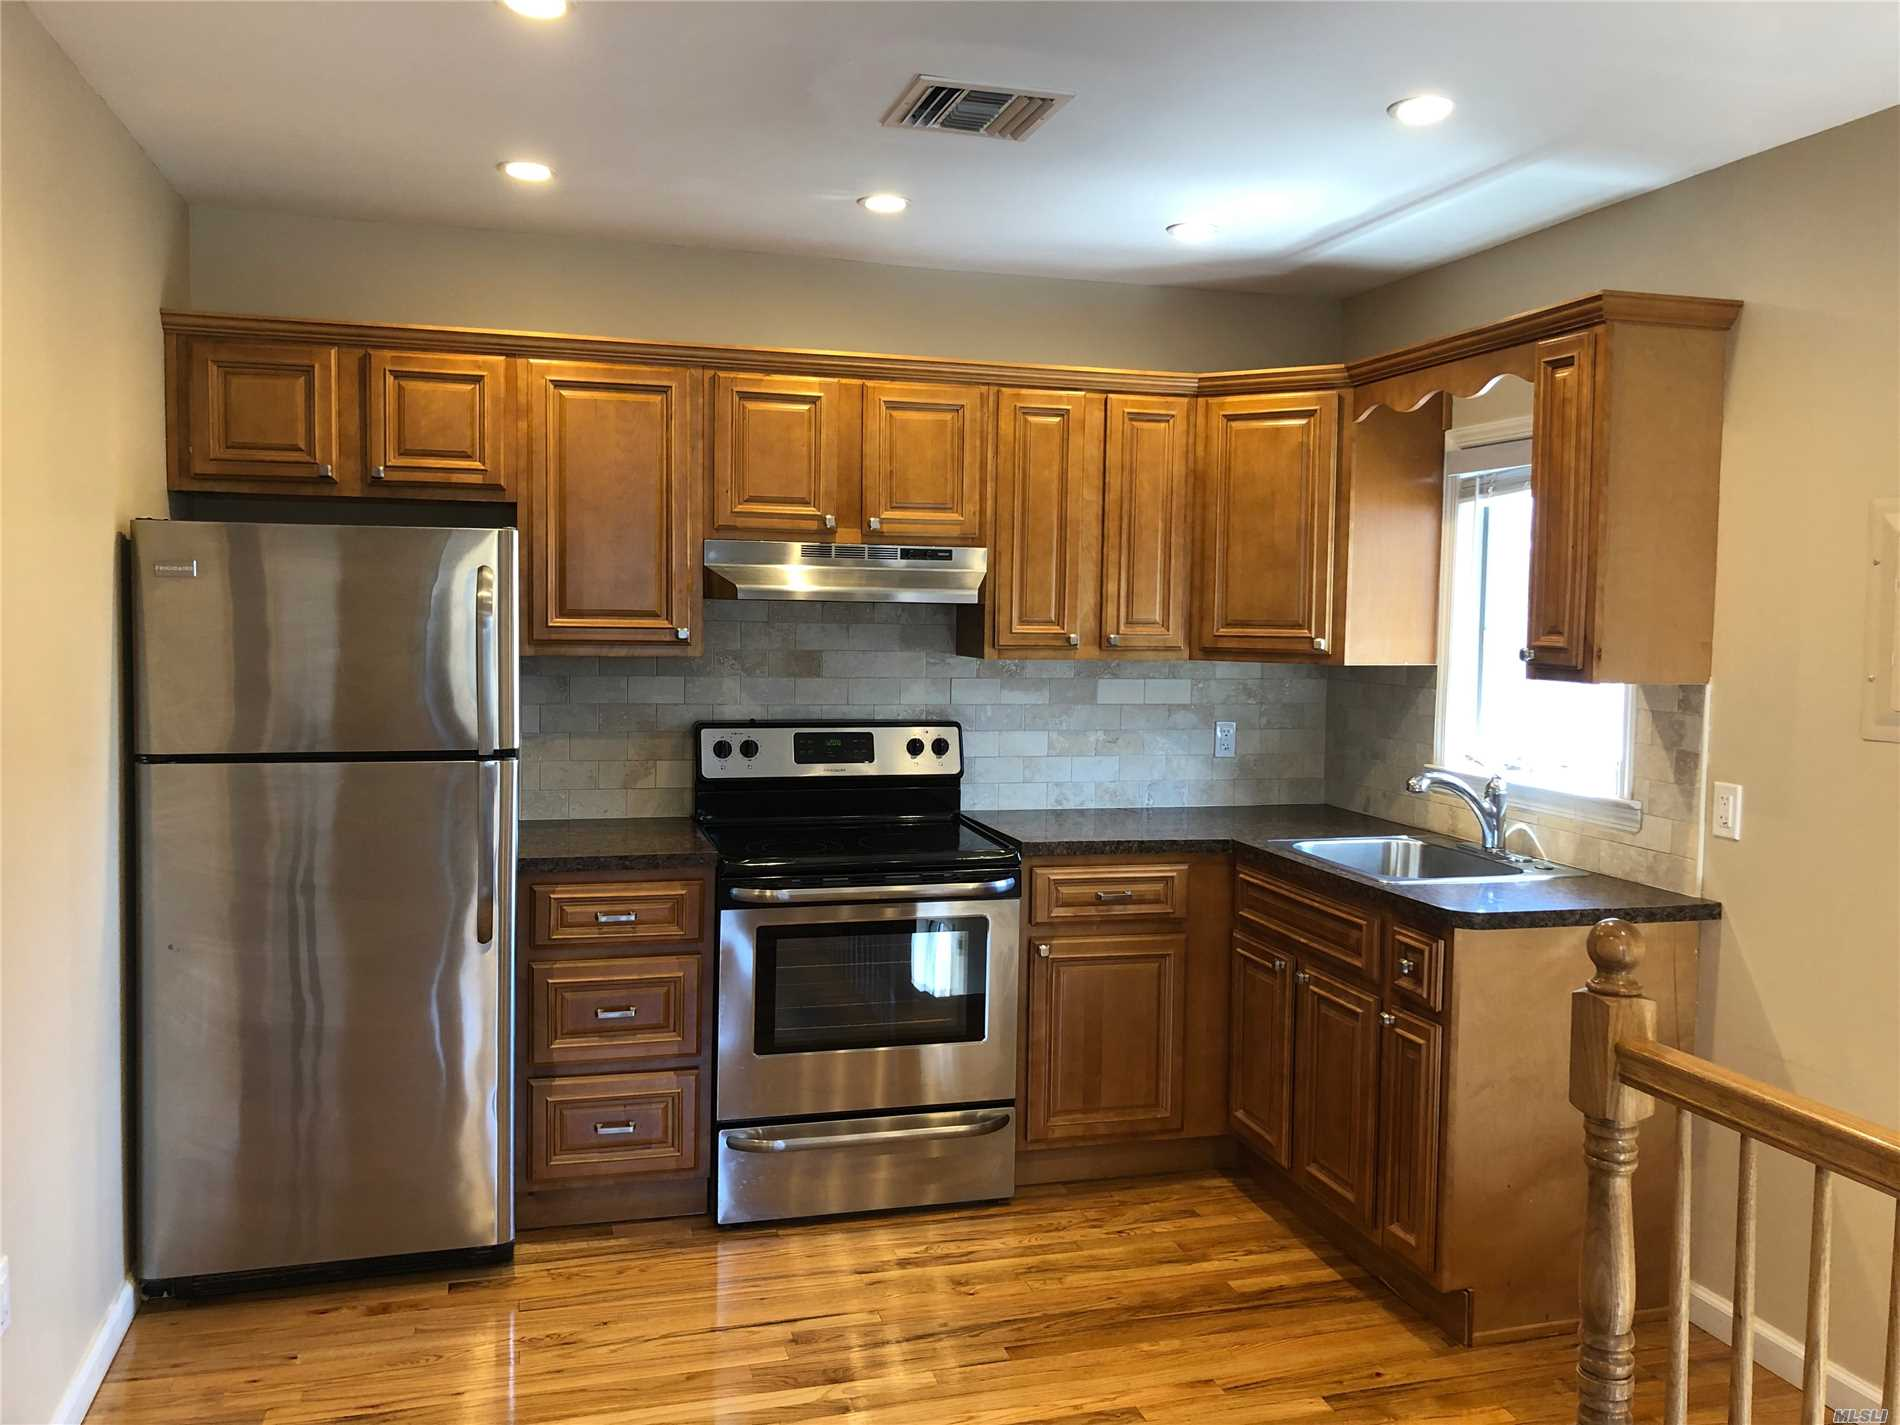 Gorgeous, Completely Renovated, Second Floor 1 Bedroom Apartment In Manorhaven. EIK, Living Room/Dining Room, Spacious Bedroom, Beautiful Hardwood Floors Throughout, Washer/Dryer In Apt. Close To Park, Beach & Pool.